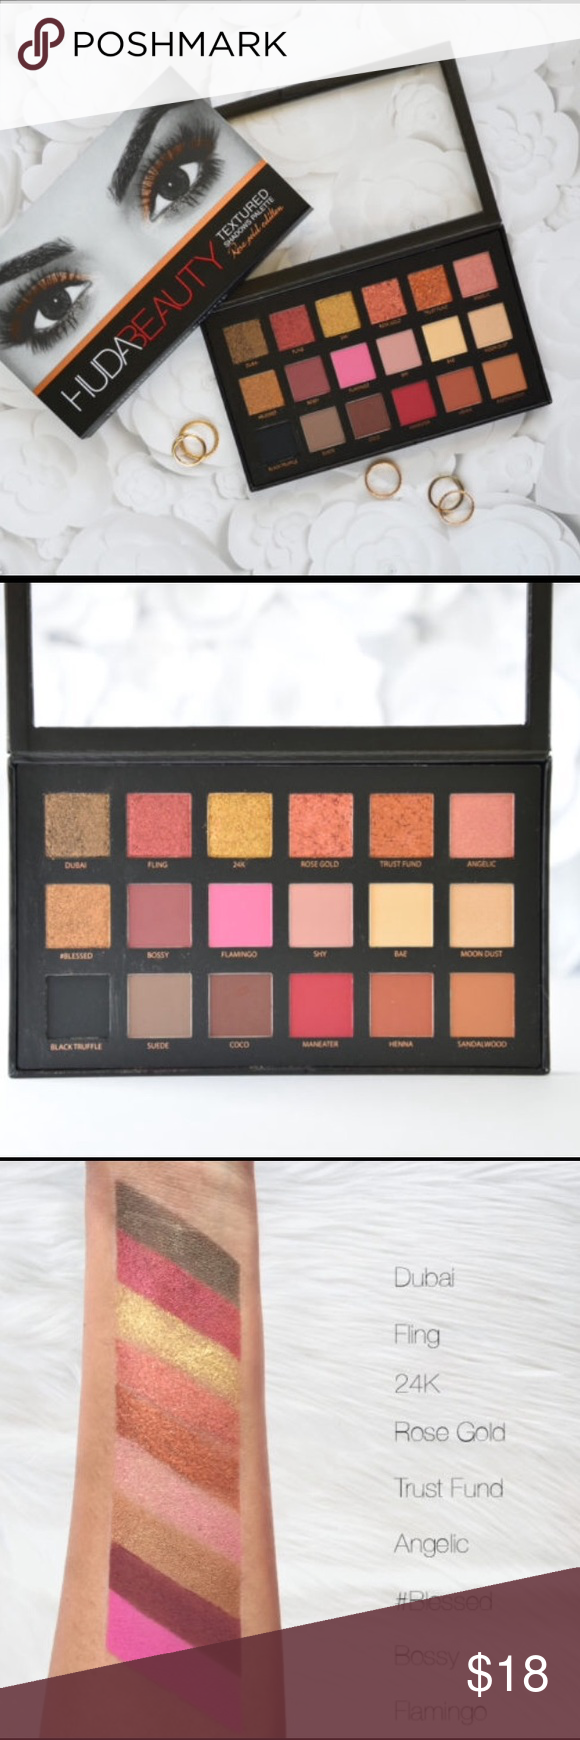 Textured Eyeshadow palette 18 colors Textured Eyeshadow palette 18 colors Makeup